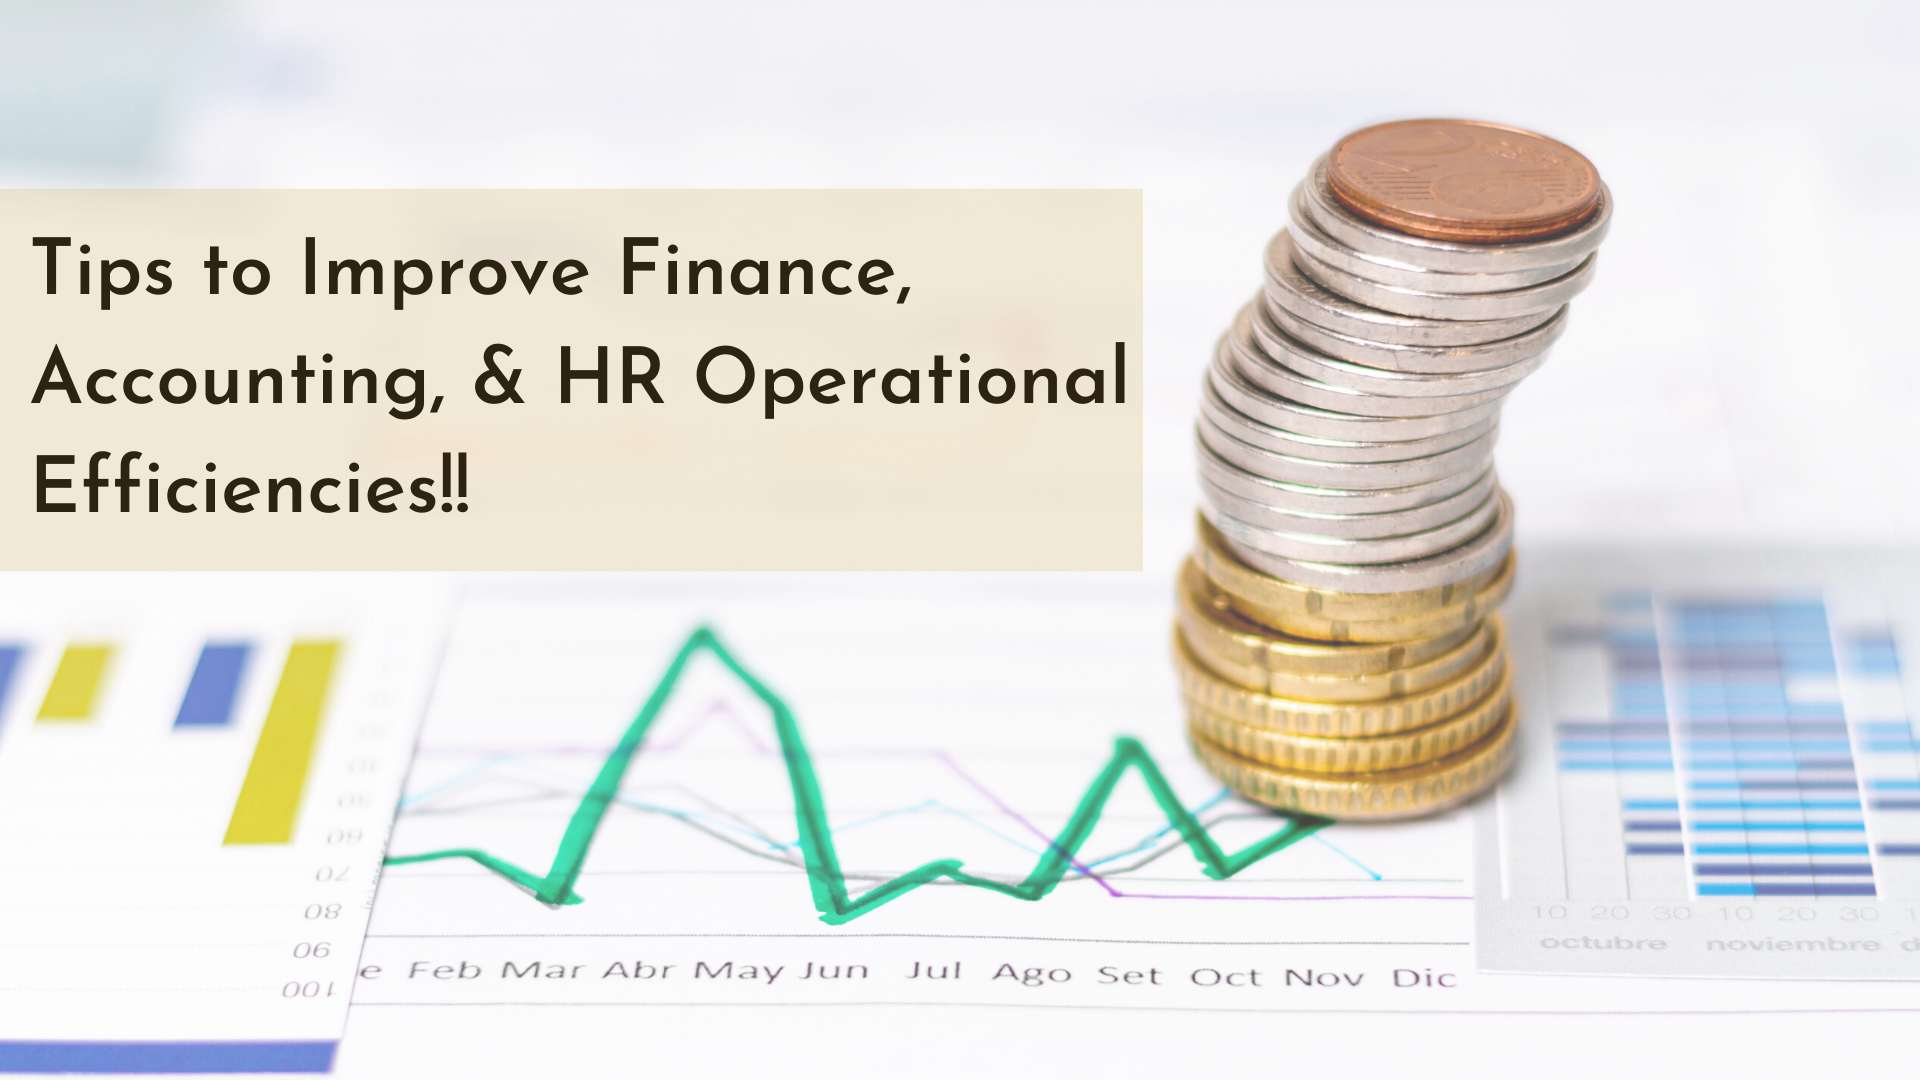 Ways to Improve Finance, Accounting, And HR Operational Efficiencies